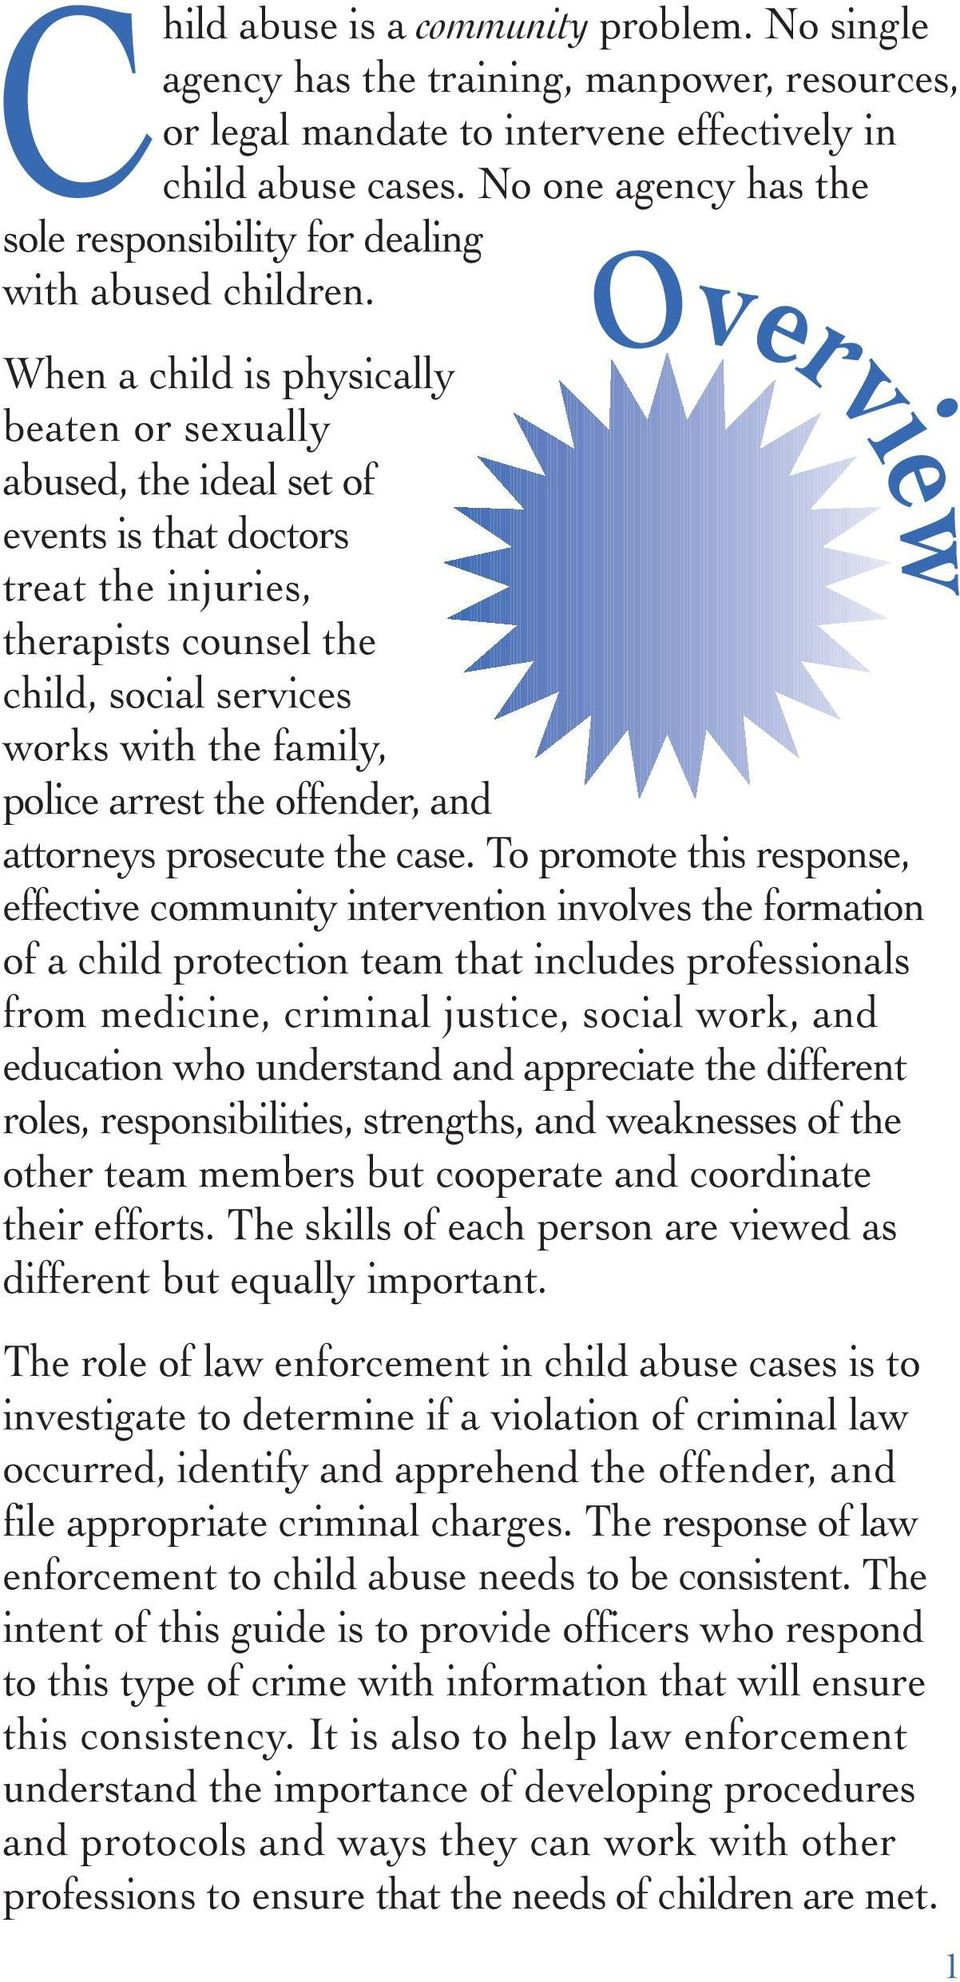 When a child is physically beaten or sexually abused, the ideal set of events is that doctors treat the injuries, therapists counsel the child, social services works with the family, police arrest